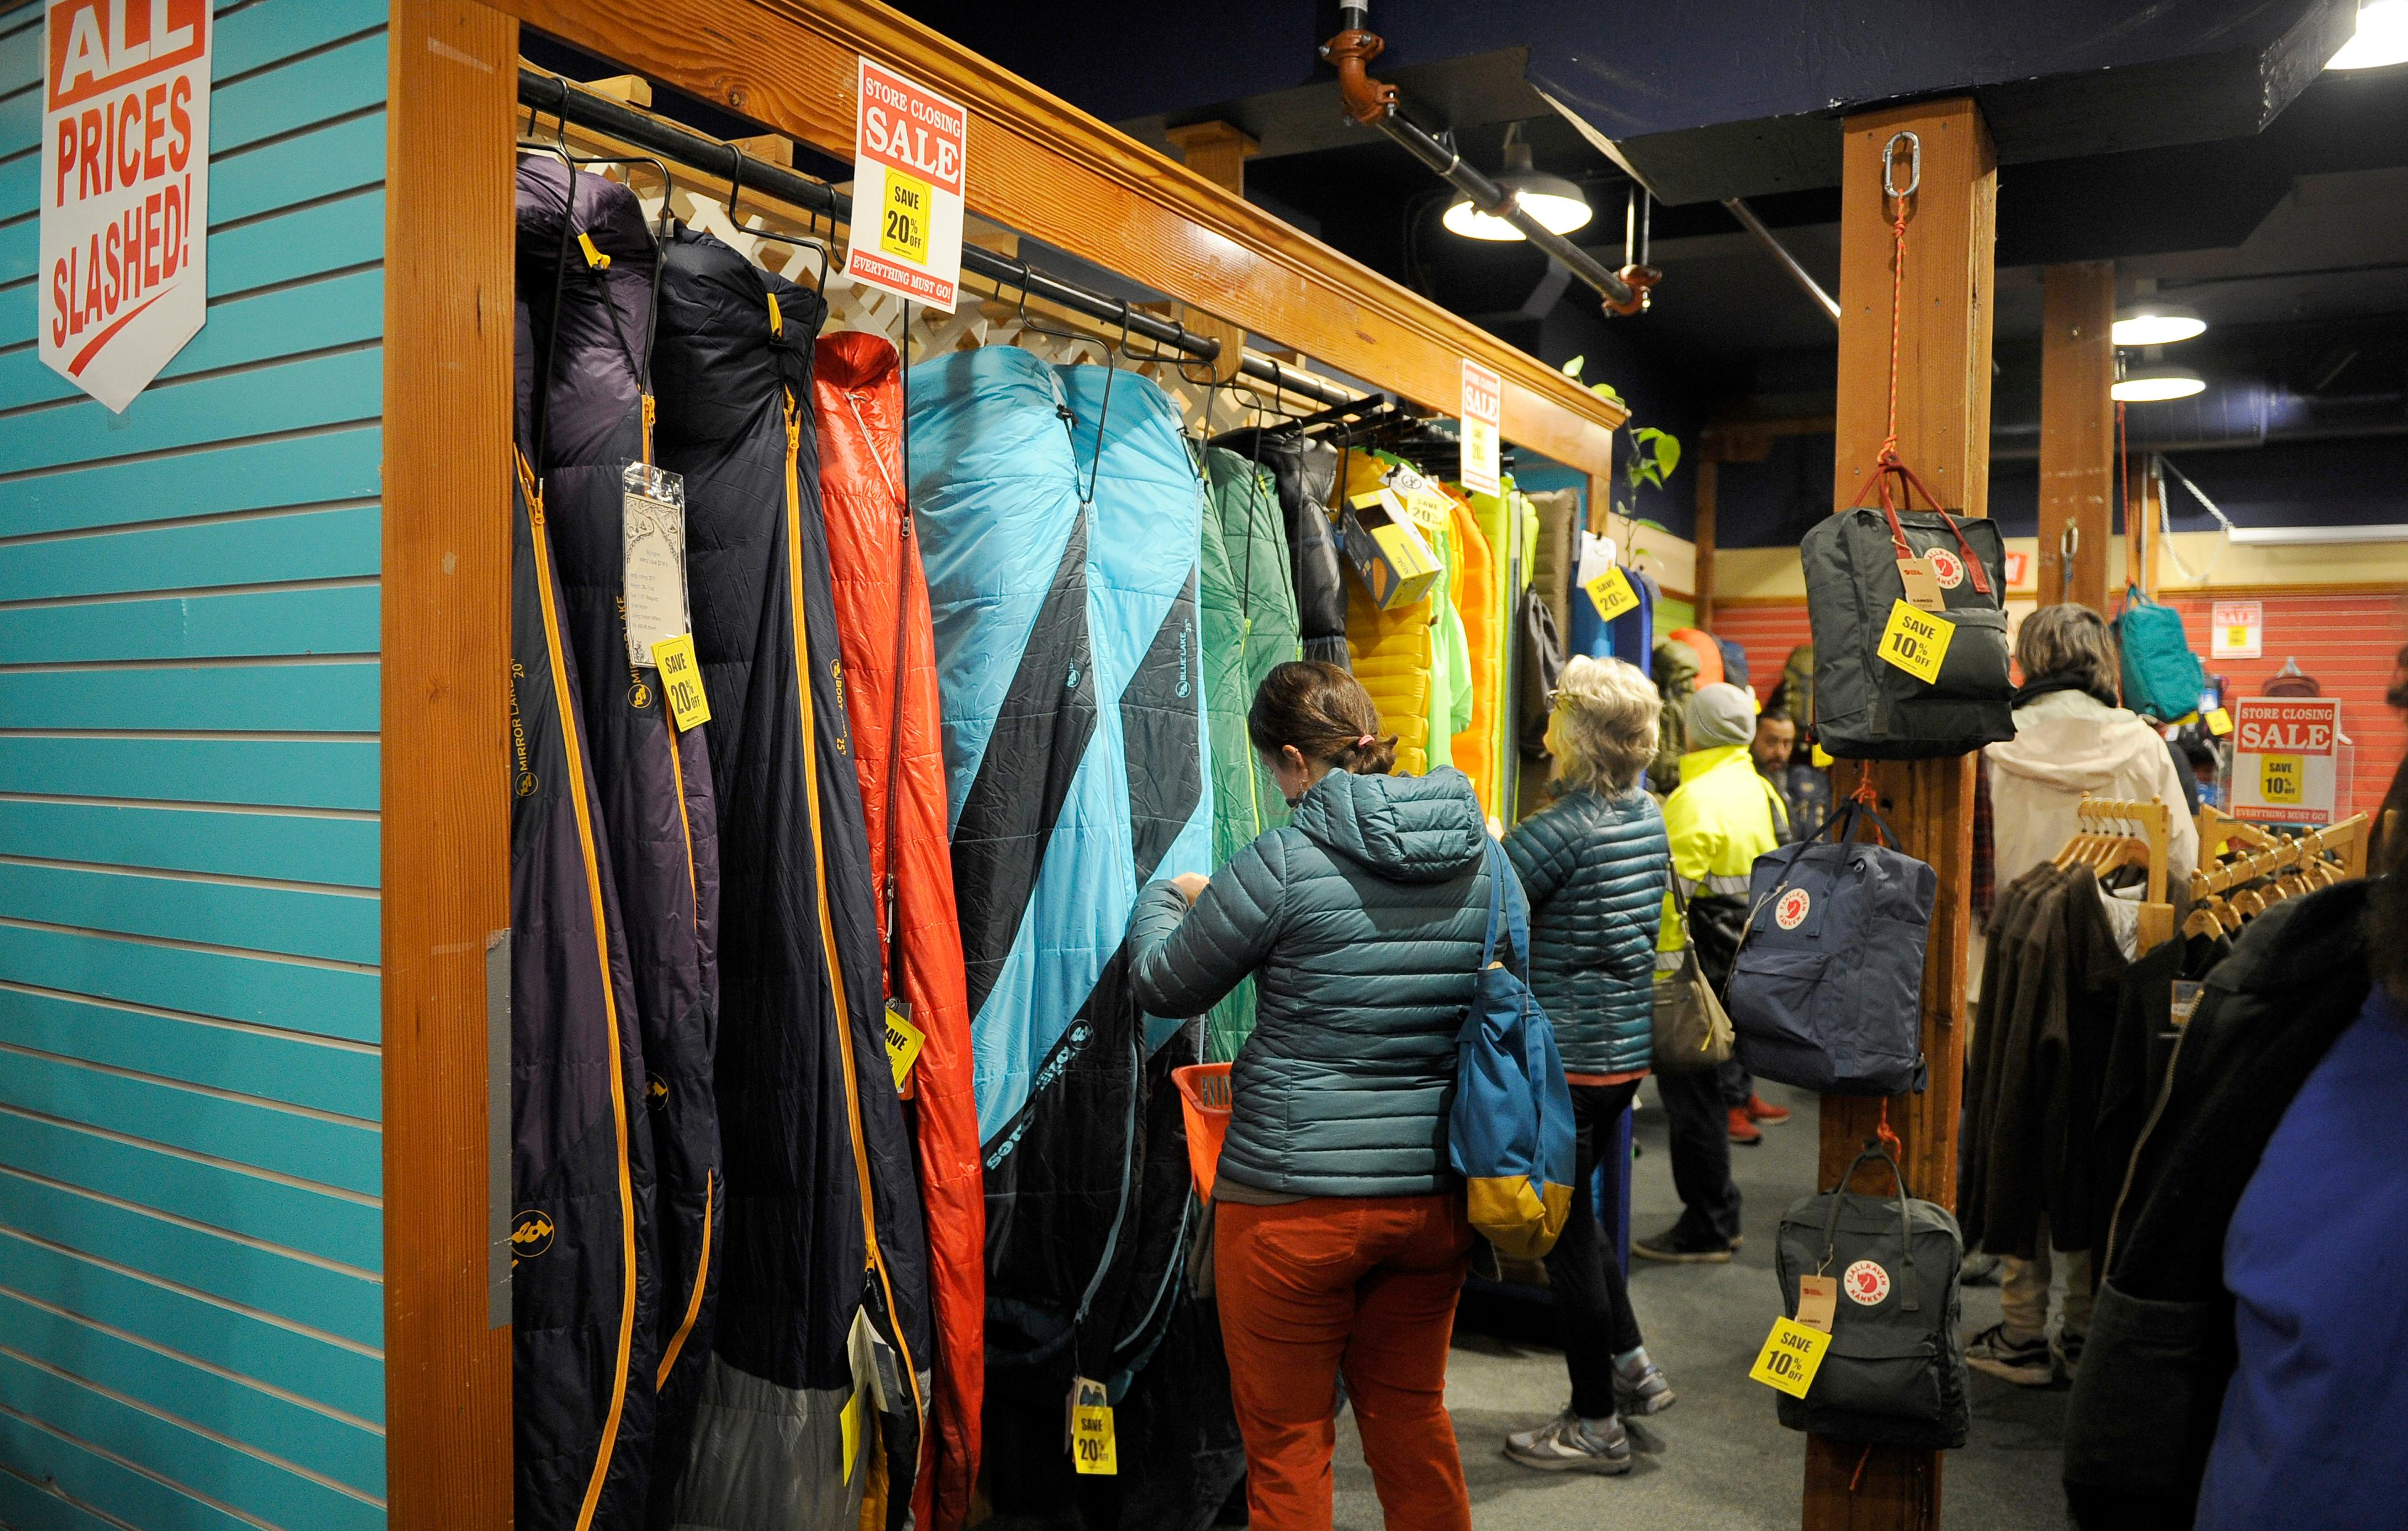 Andy Atkinson / Daily Tidings<br>Customers look through sleeping bags during the Ashland Outdoor Store's liquidation sale Wednesday morning.